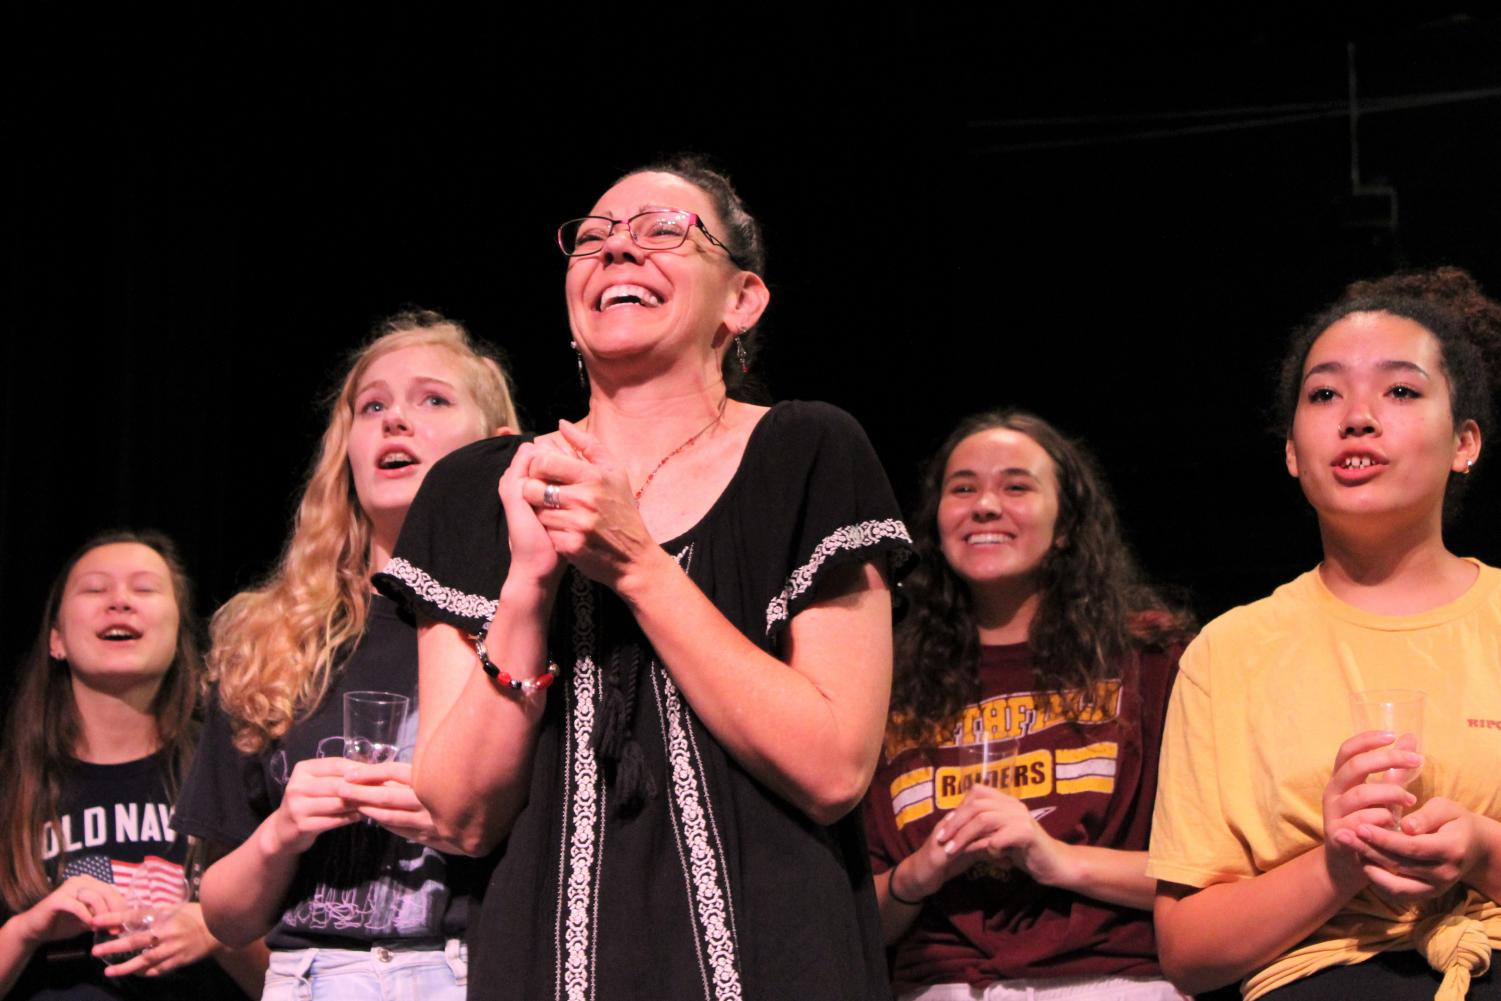 """Choreographer Julianne Mundale, junior Lilly Strathman, sophomore Dayanara Mora Zengel and freshmen Haley Nielson and Gwendolyn Rockler-Gladen rehearse the opening number of """"Legally Blonde"""". The show will open 7 p.m., Nov. 15 in the Auditorium."""